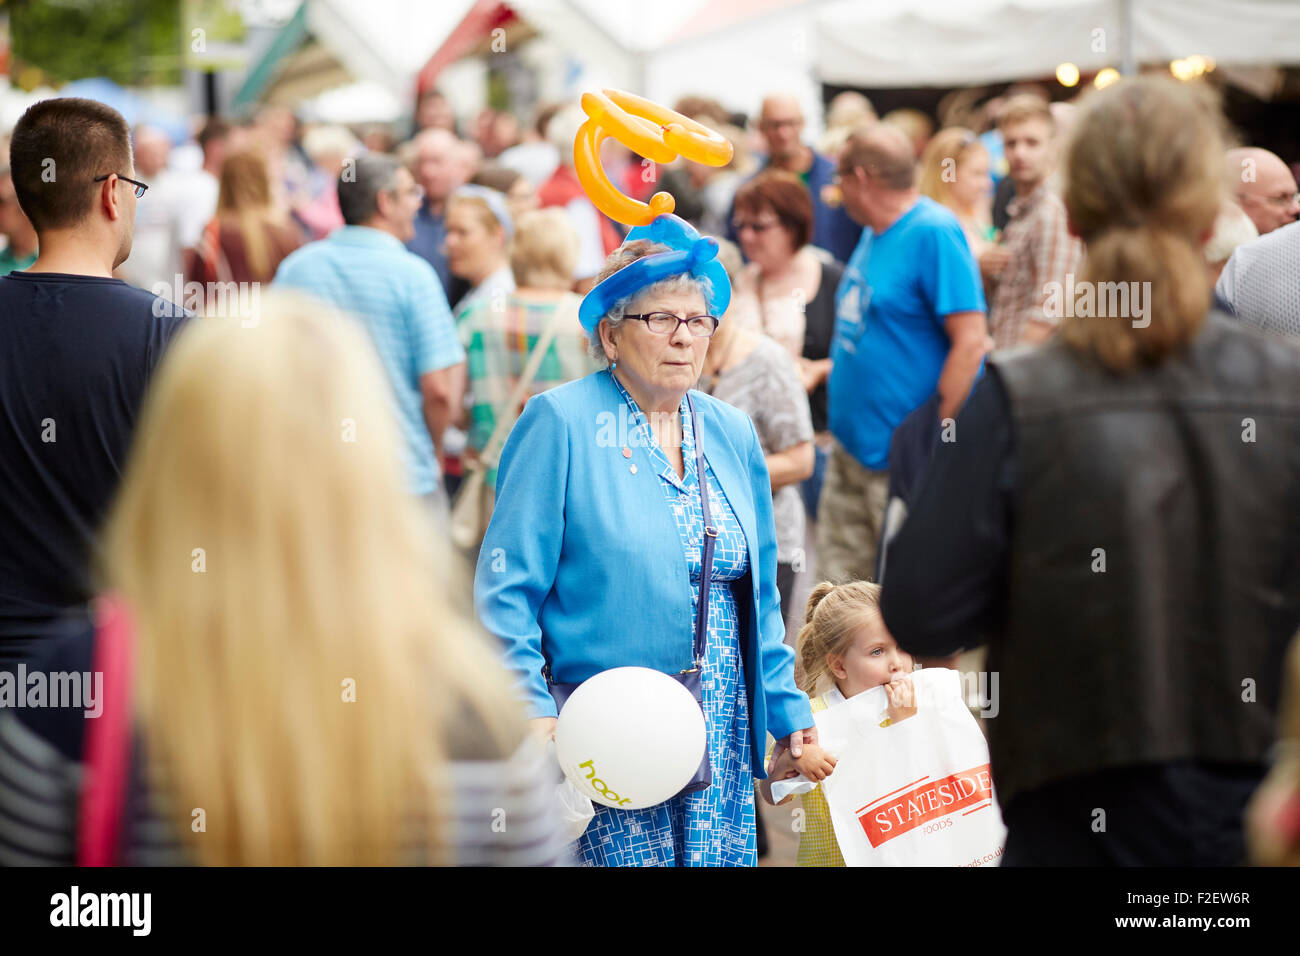 ALDI sponsored 10th Bolton Food and Drink Festival 2015  a grandma walks through the crowds with a balloon modelled - Stock Image